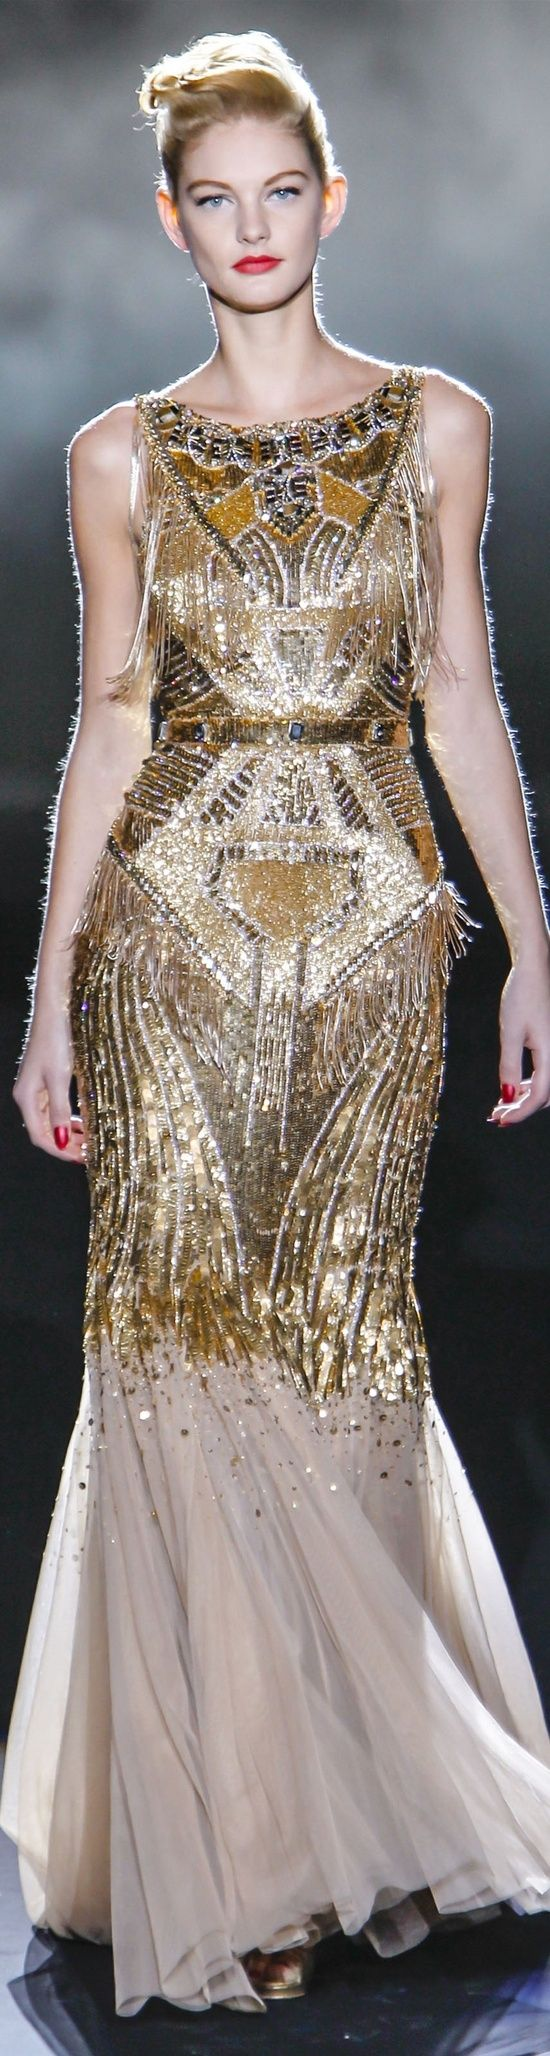 Badgley Mischka Collections Fall Winter 2013-14 collection #gold by Janny Dangerous